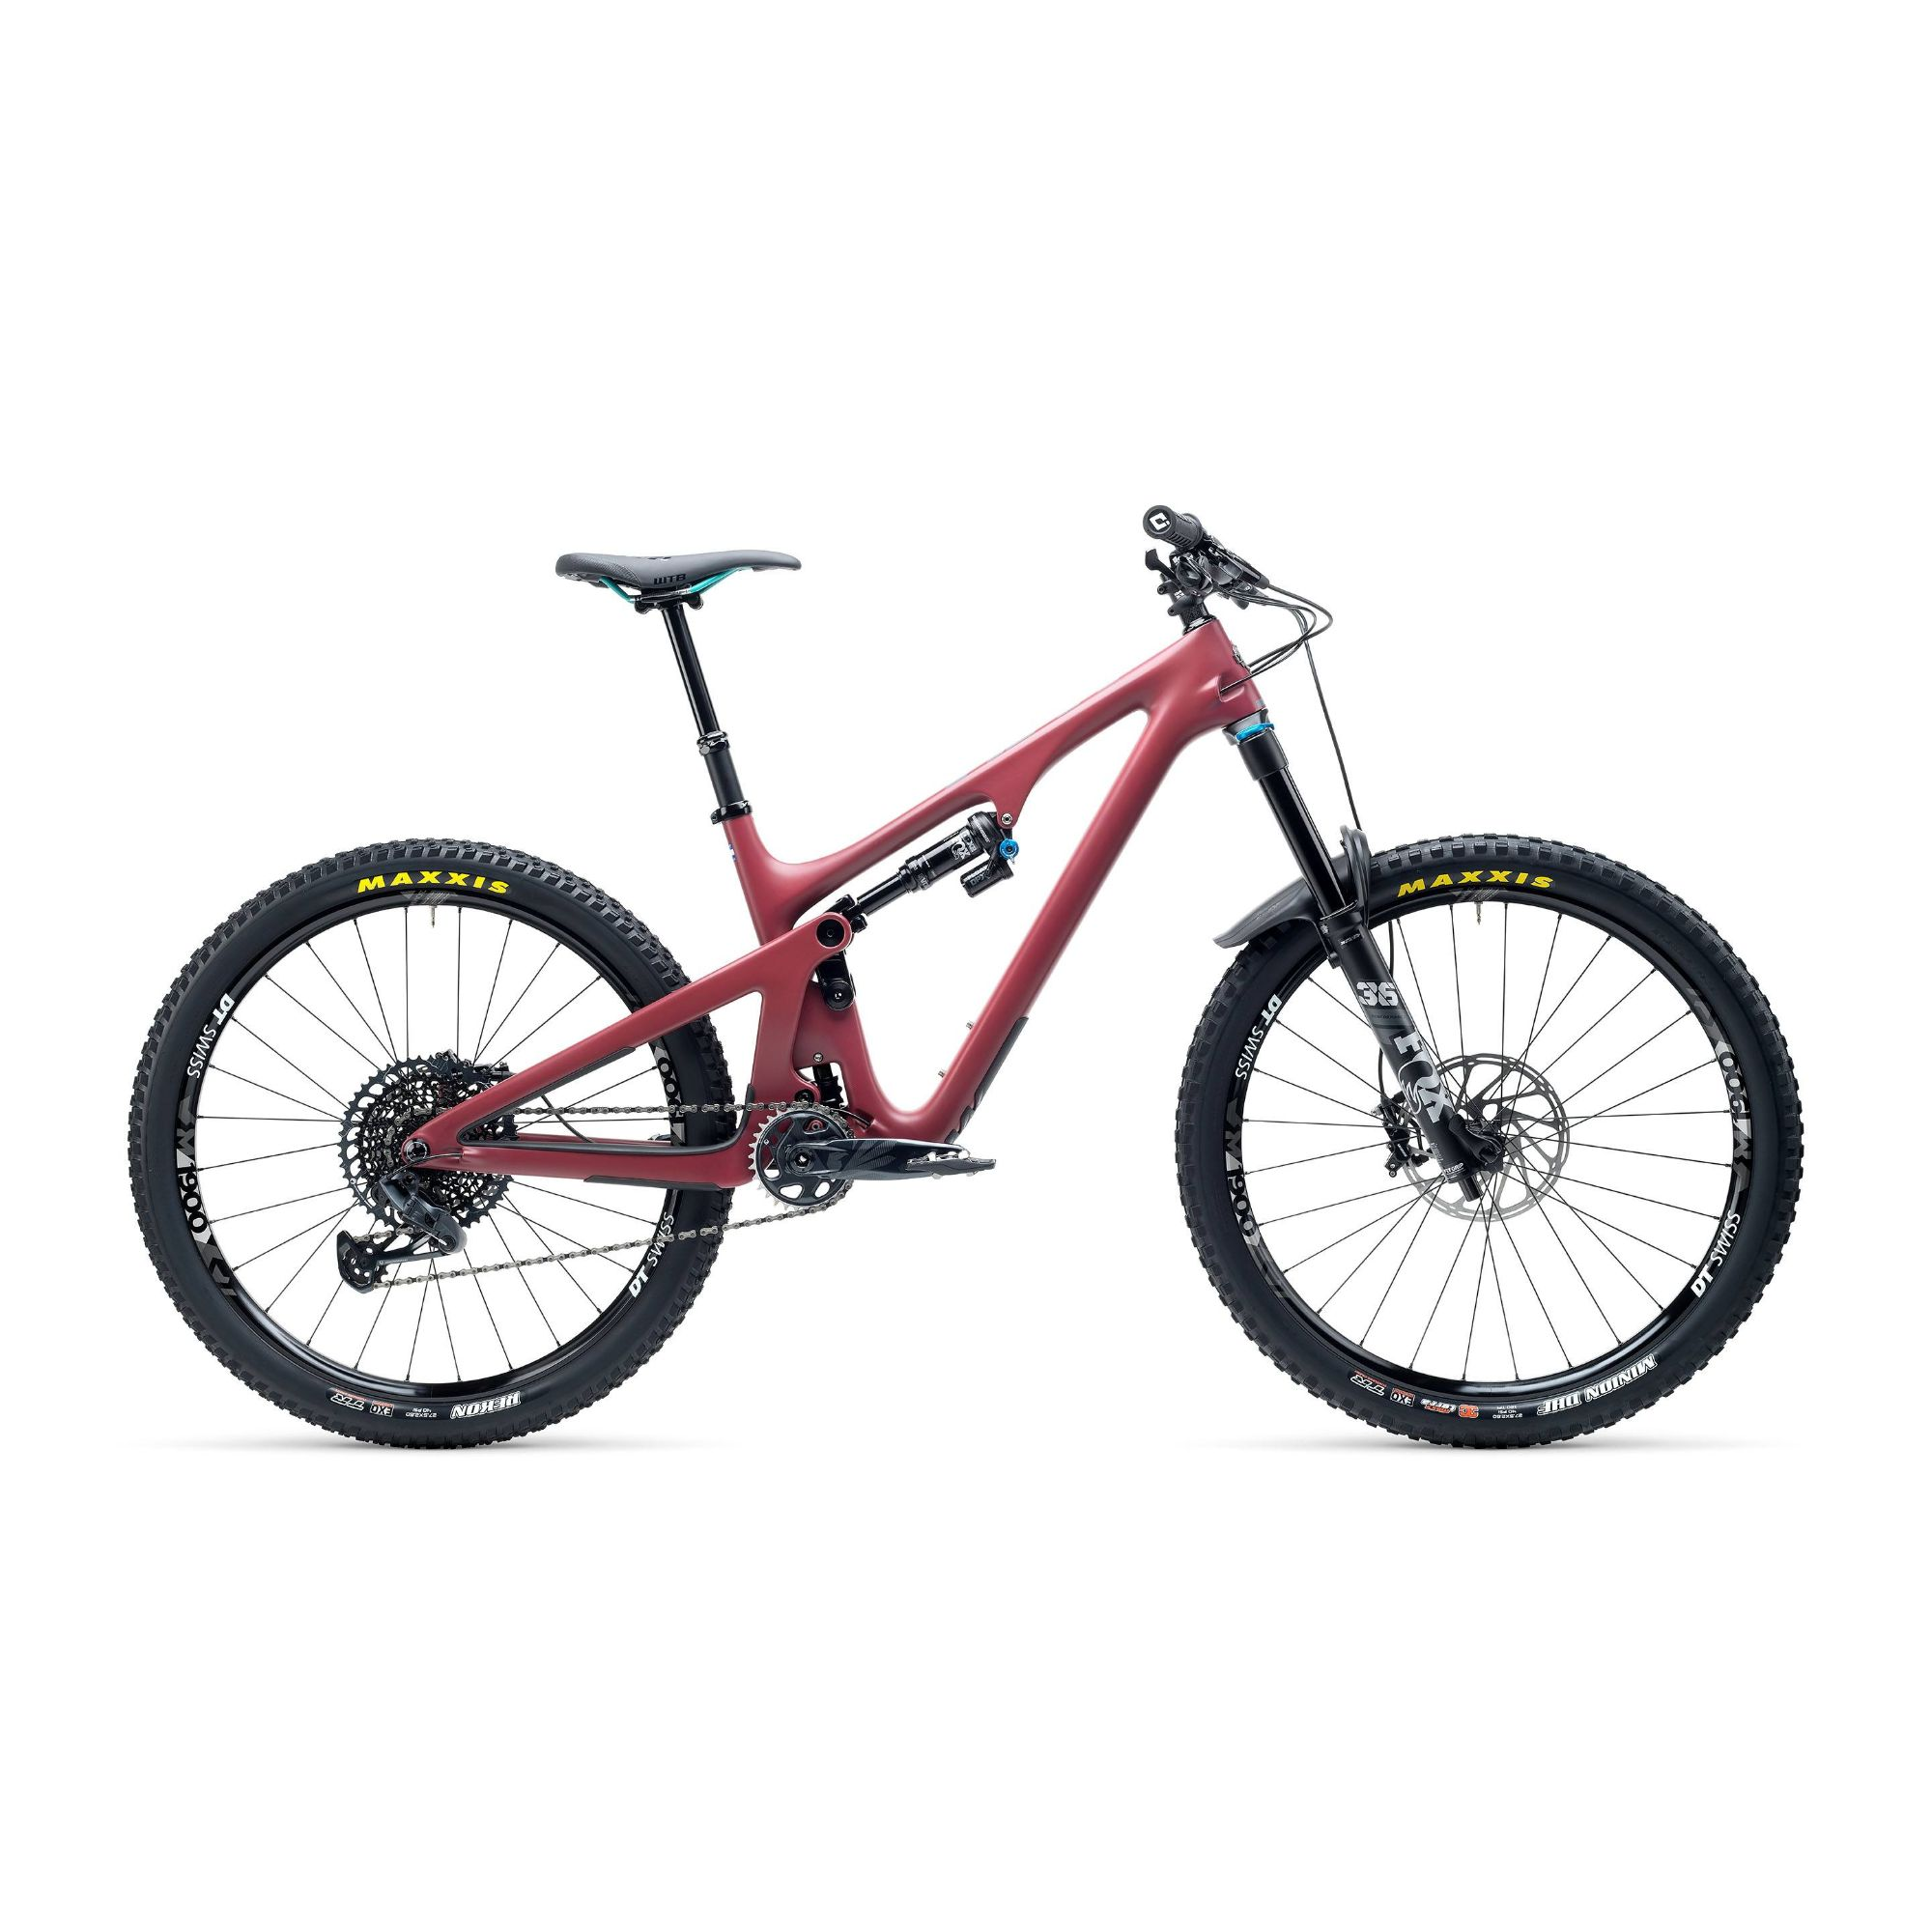 Yeti SB140 CSeries C2 GX Eagle 27.5 Carbon 2021 Mountain Bike Ron